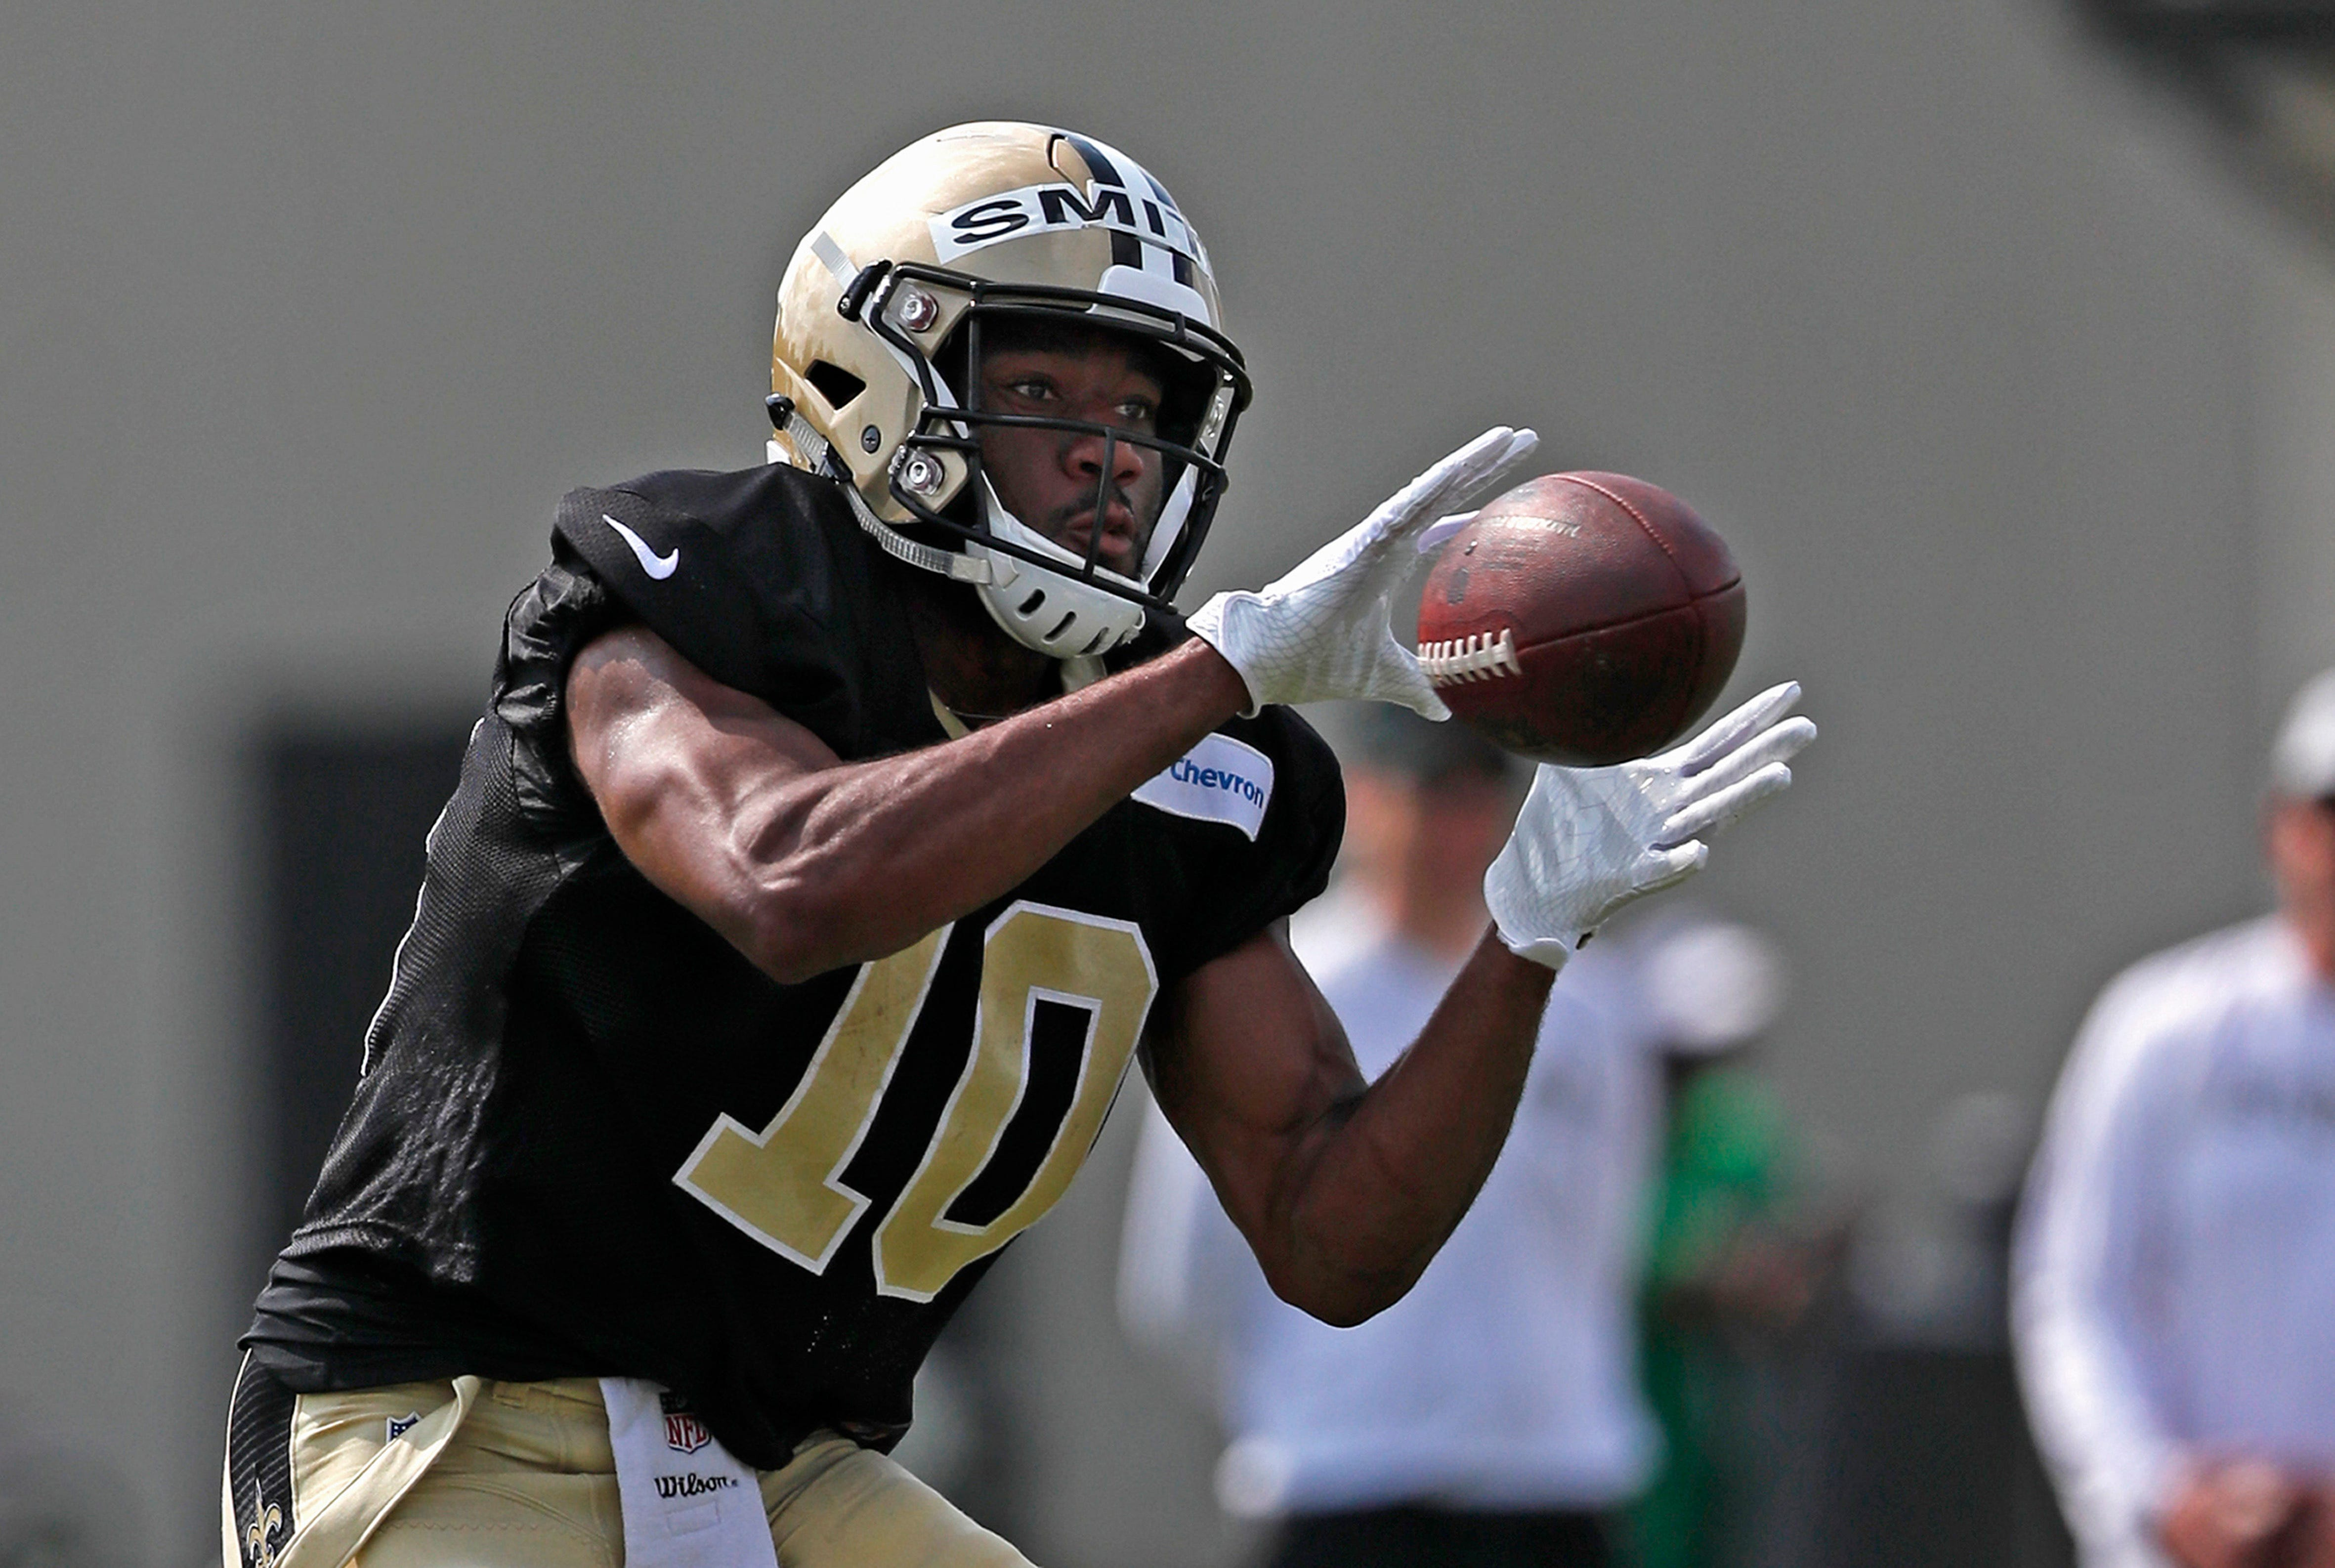 Saints' pass game evolving as Meredith, Smith vie for snaps